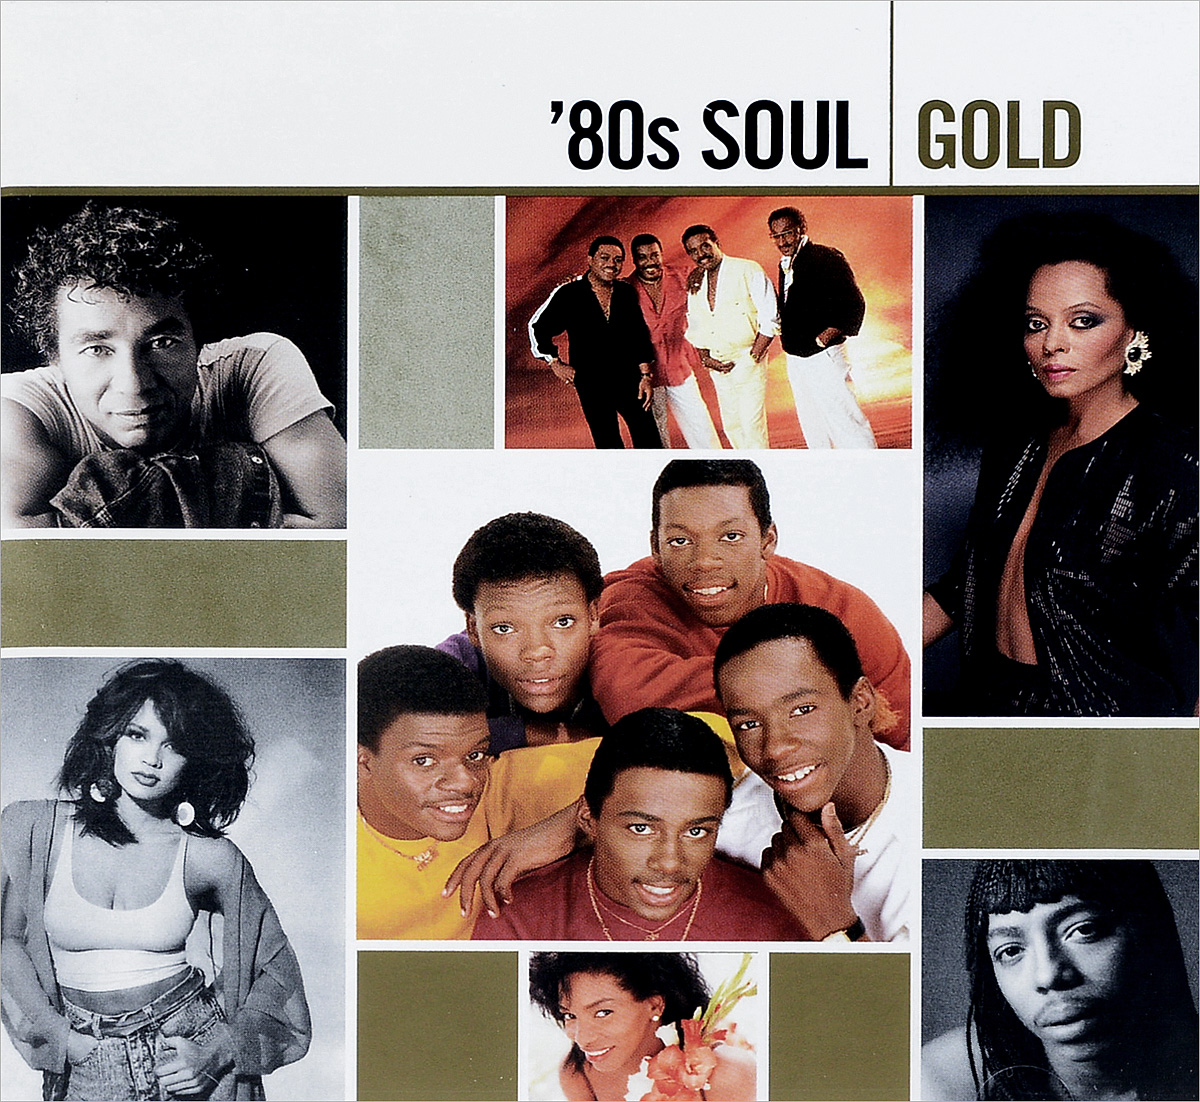 80s Soul. Gold (2 CD) 80s pop 3 cd